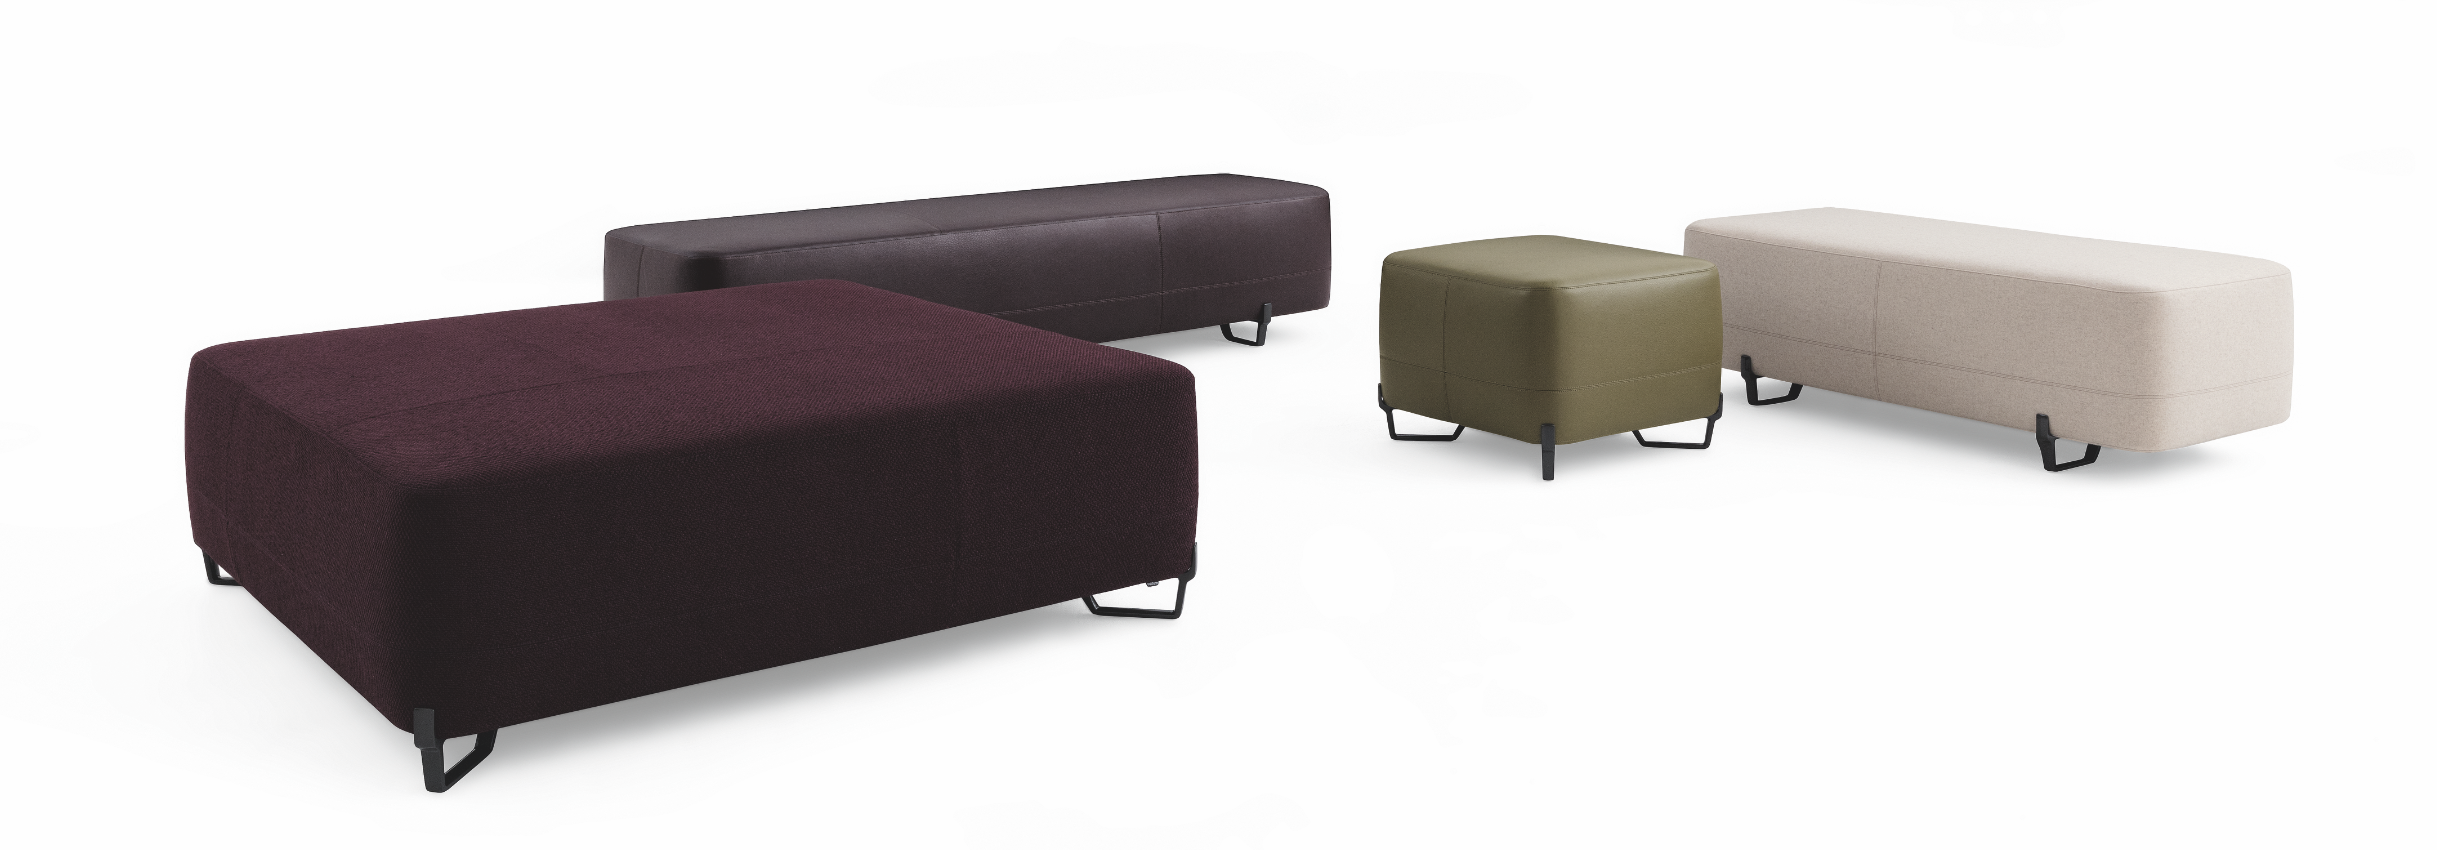 Poufs New York by Jean-Marie Massaud for Poliform #slaapkamer ...